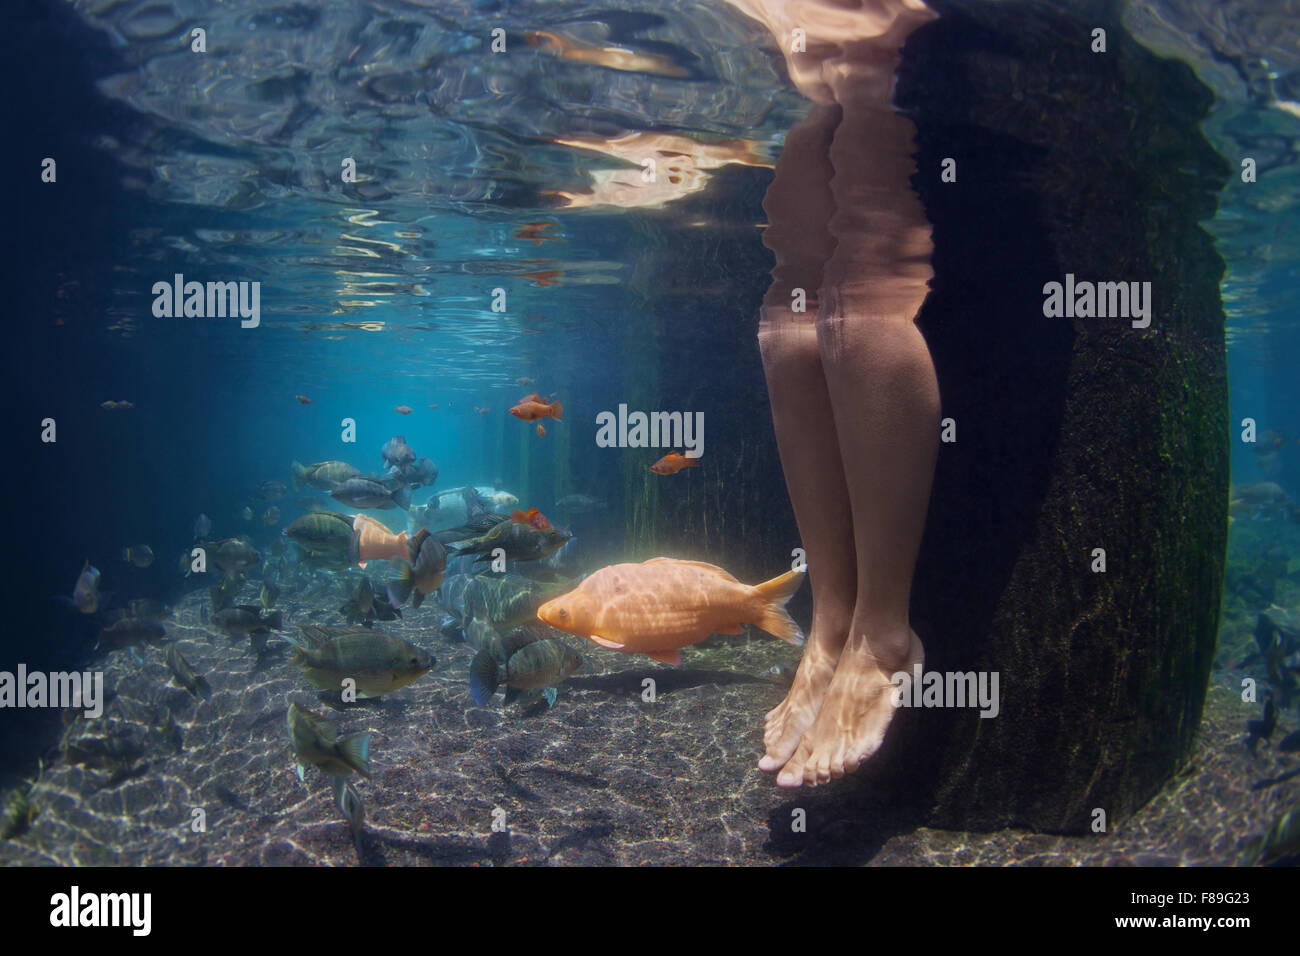 Underwater picture of legs of young woman relaxing in spa pool with gold koi fishes swimming in fresh blue water. Stock Photo